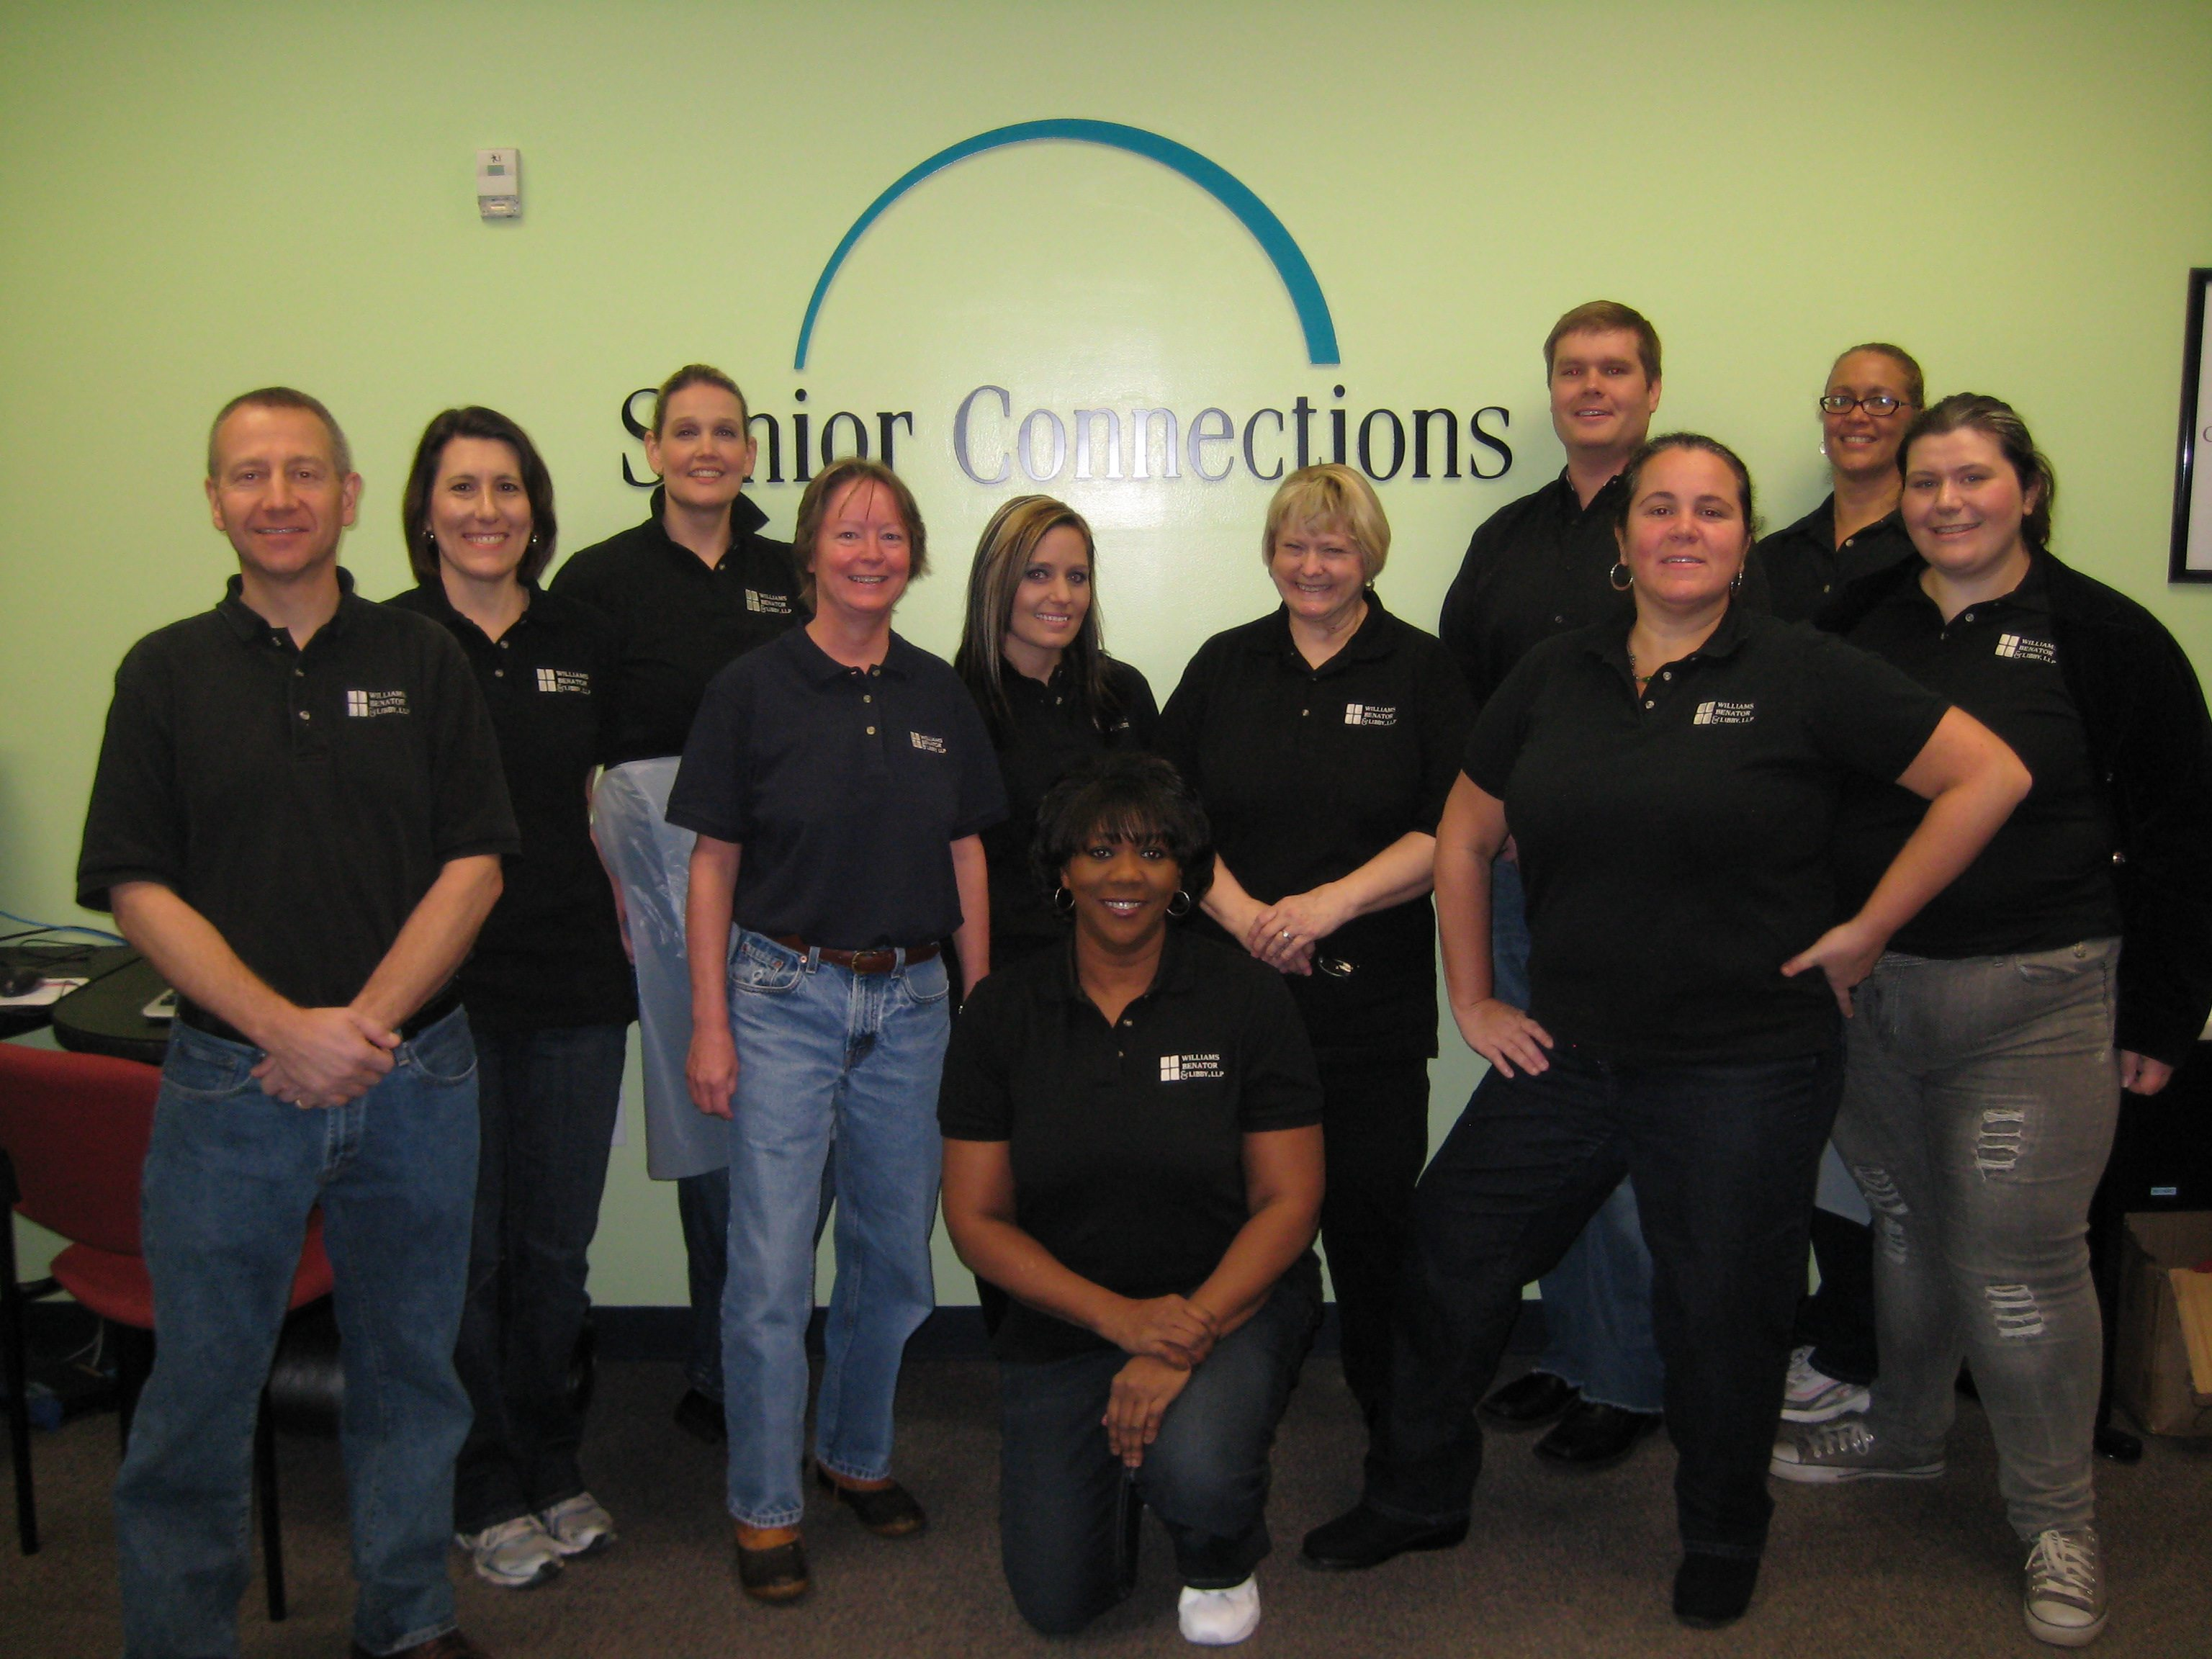 The morning crew of Senior Connections volunteers in 2012.